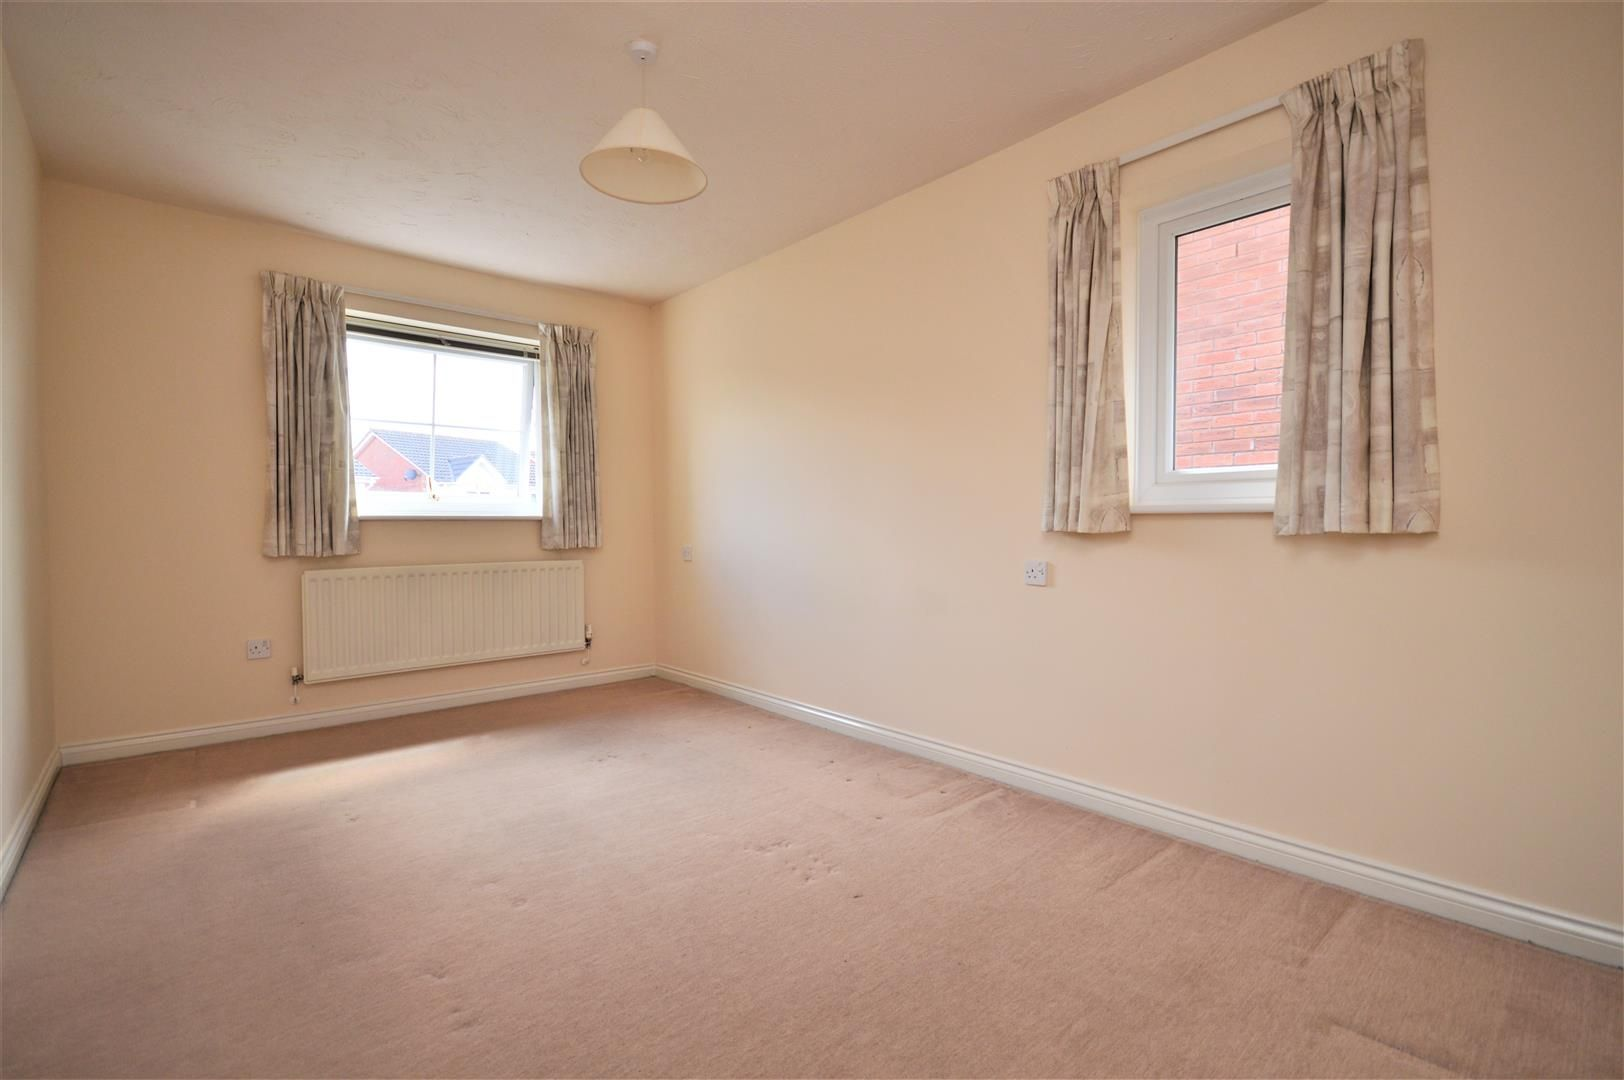 4 bed detached for sale in Belmont 11